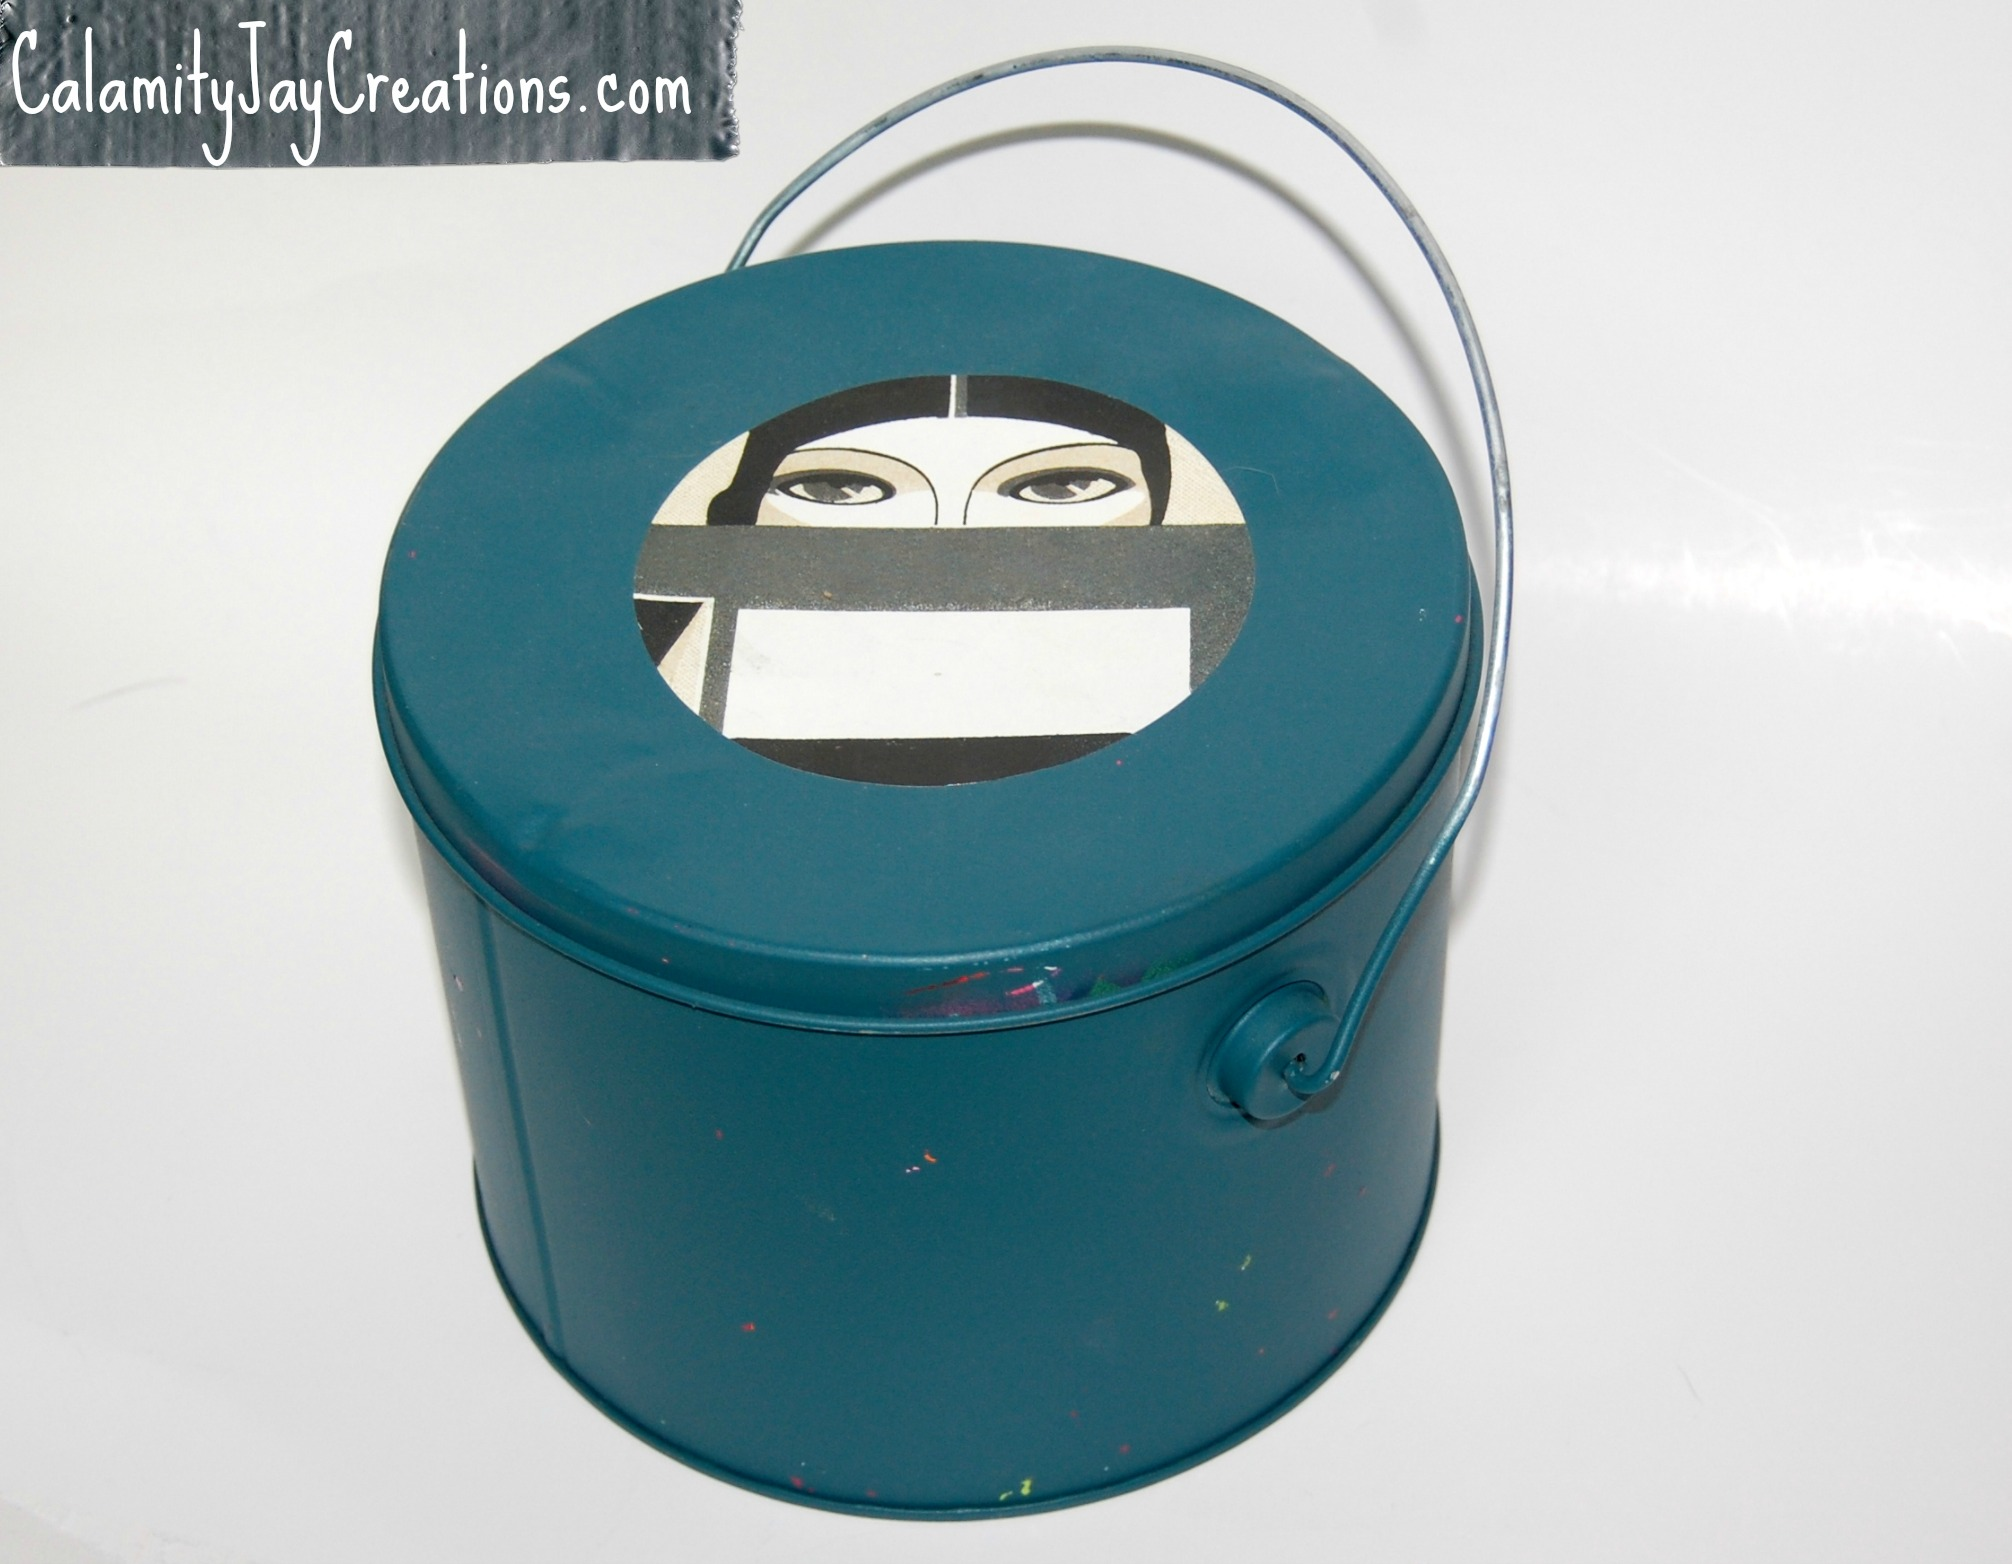 Finished teal bucket with eyes sticker book plate